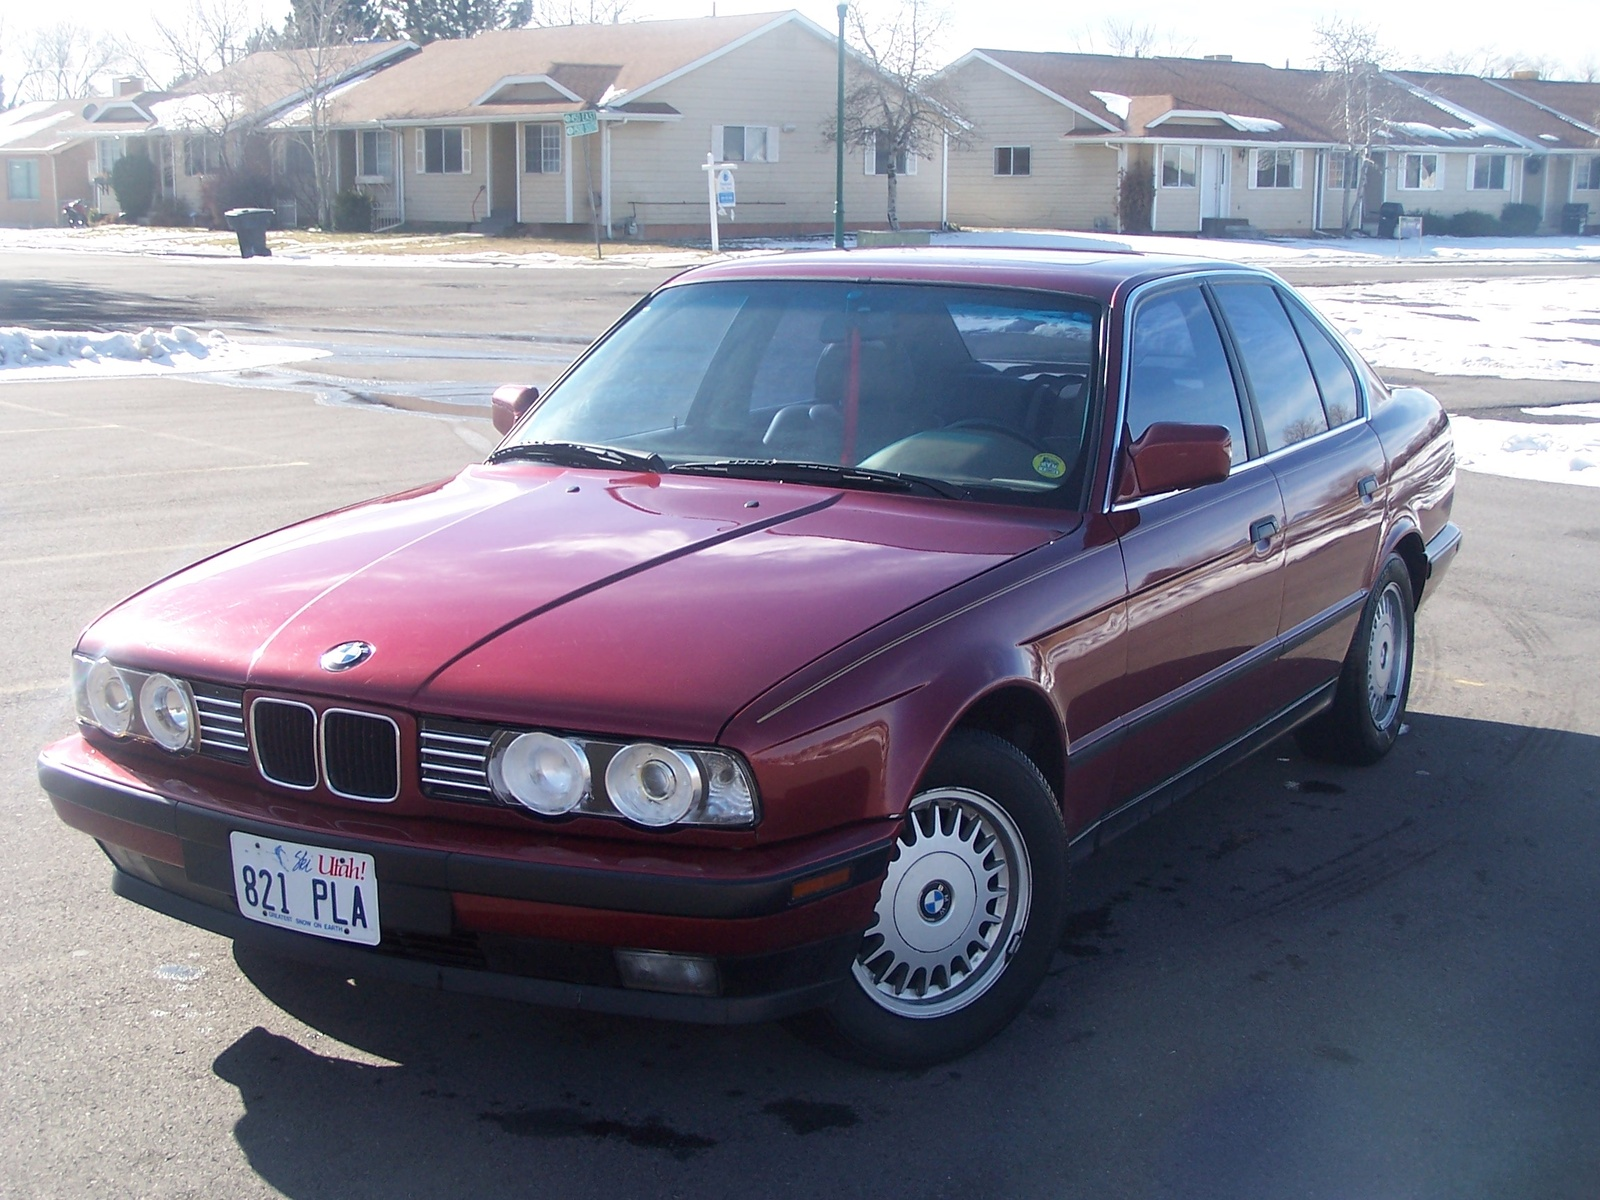 1992 Bmw 5 Series - Other Pictures